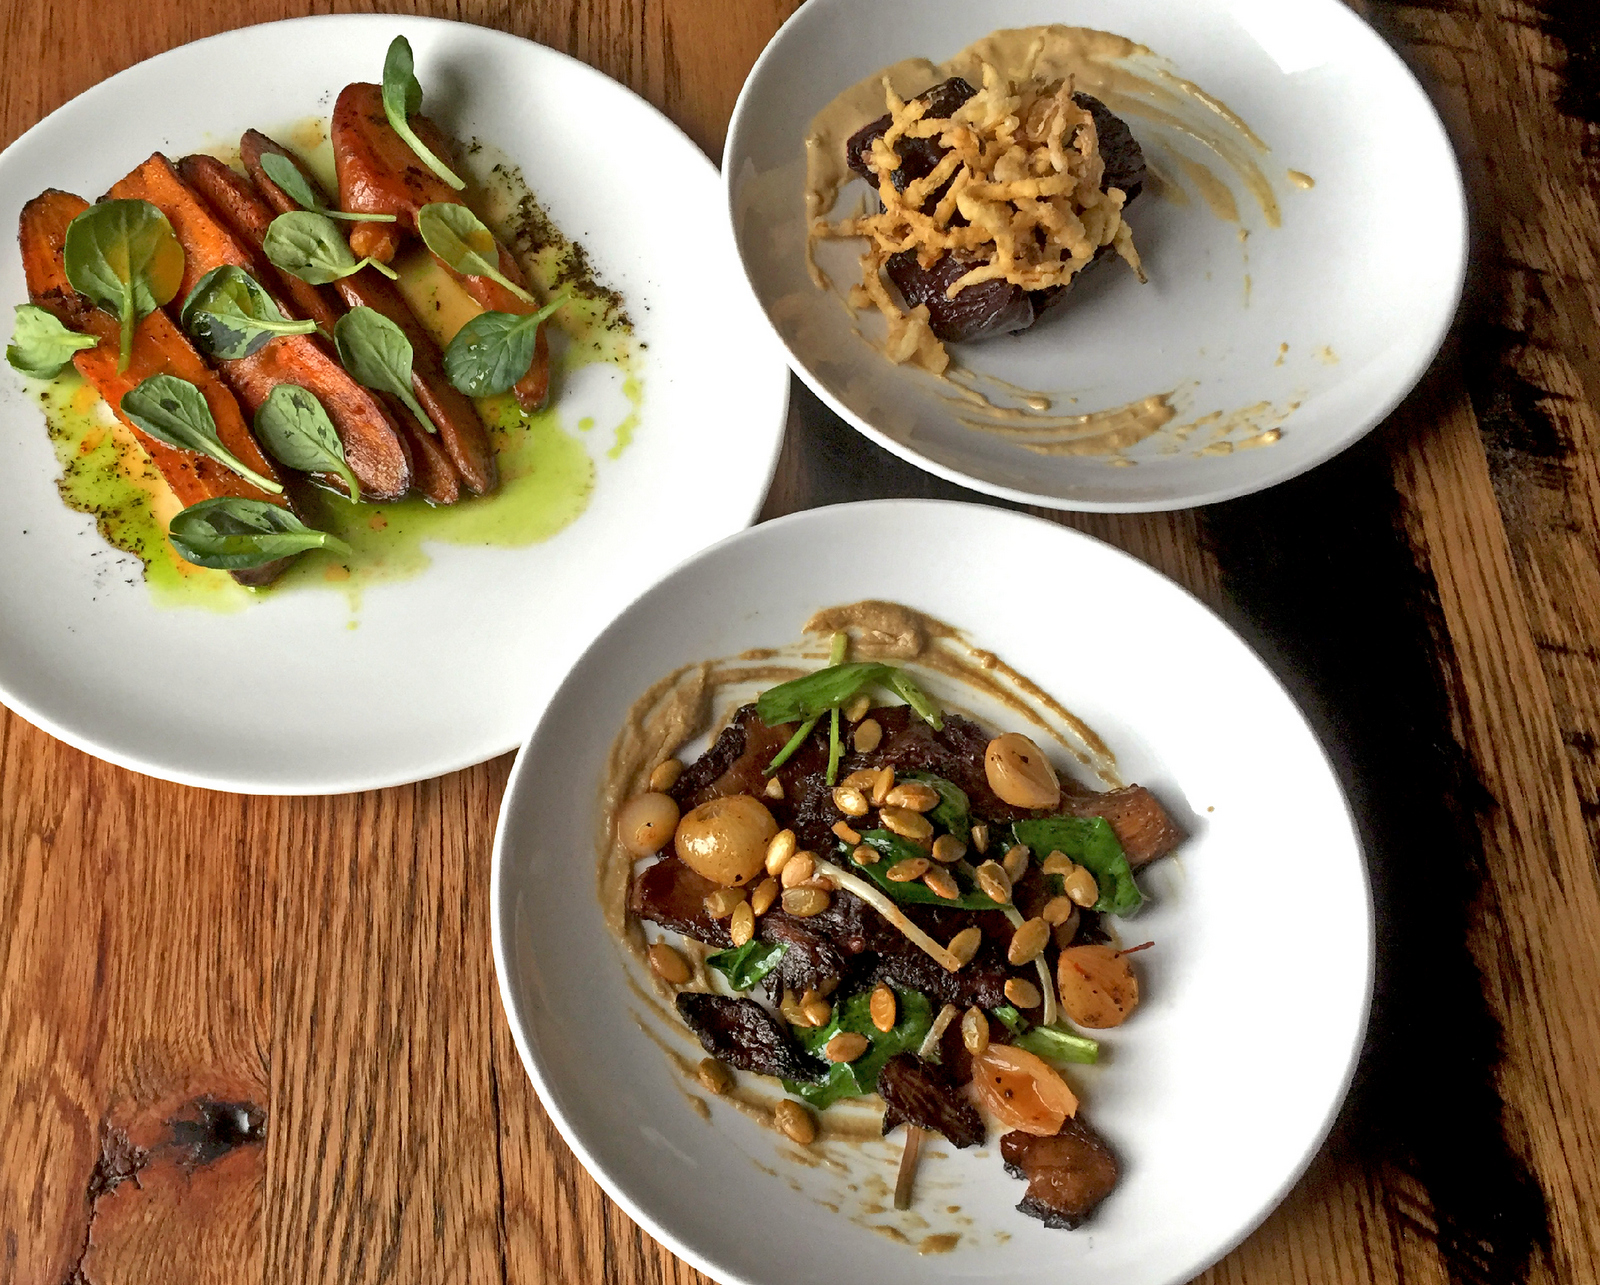 Even in this low point of the vegetable season, Joseph Fenush's vegetable creations at Toutant are not to be missed. Caramelized carrots, smoked beets and brined mushrooms make these dishes soar. (Christa Glennie Seychew/Special to The News)